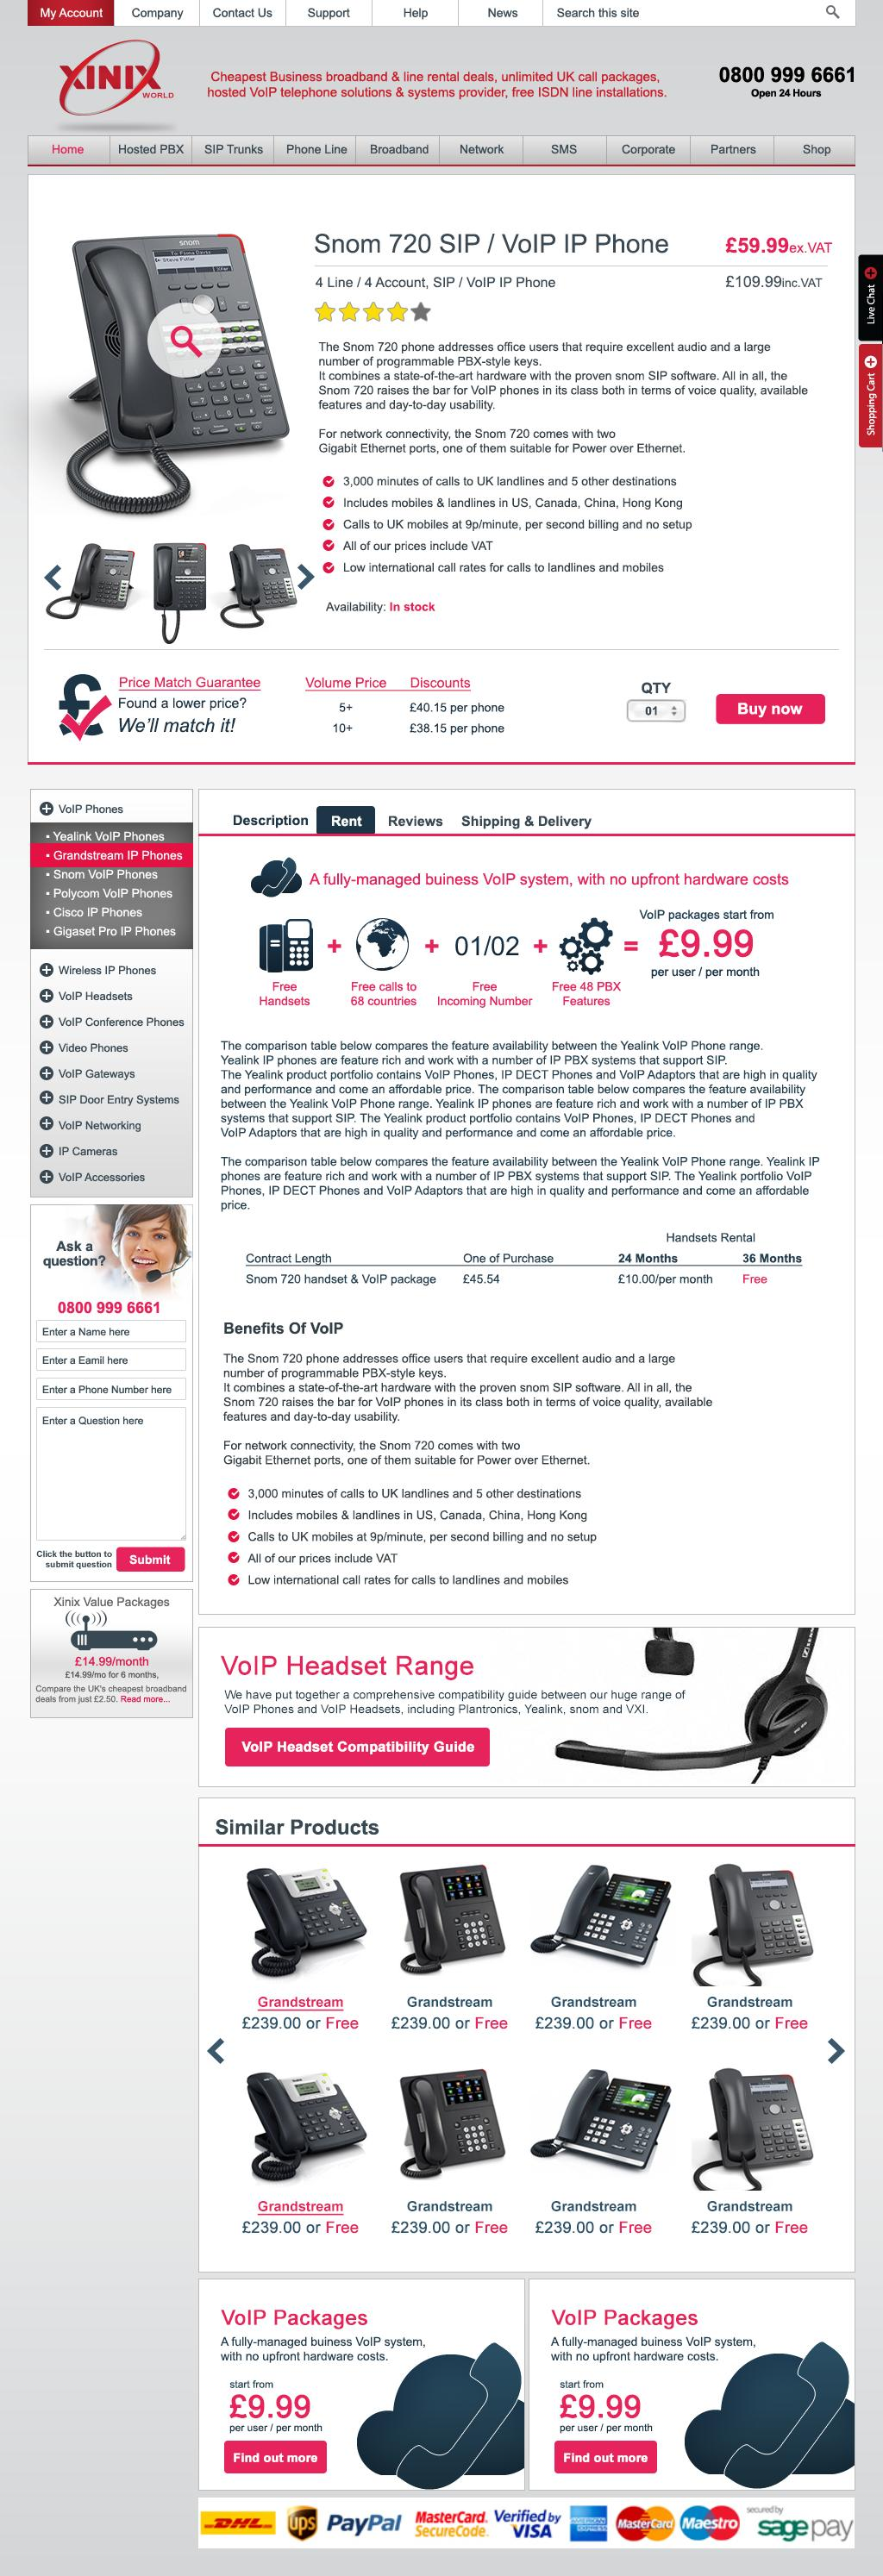 handset-product-page-rent